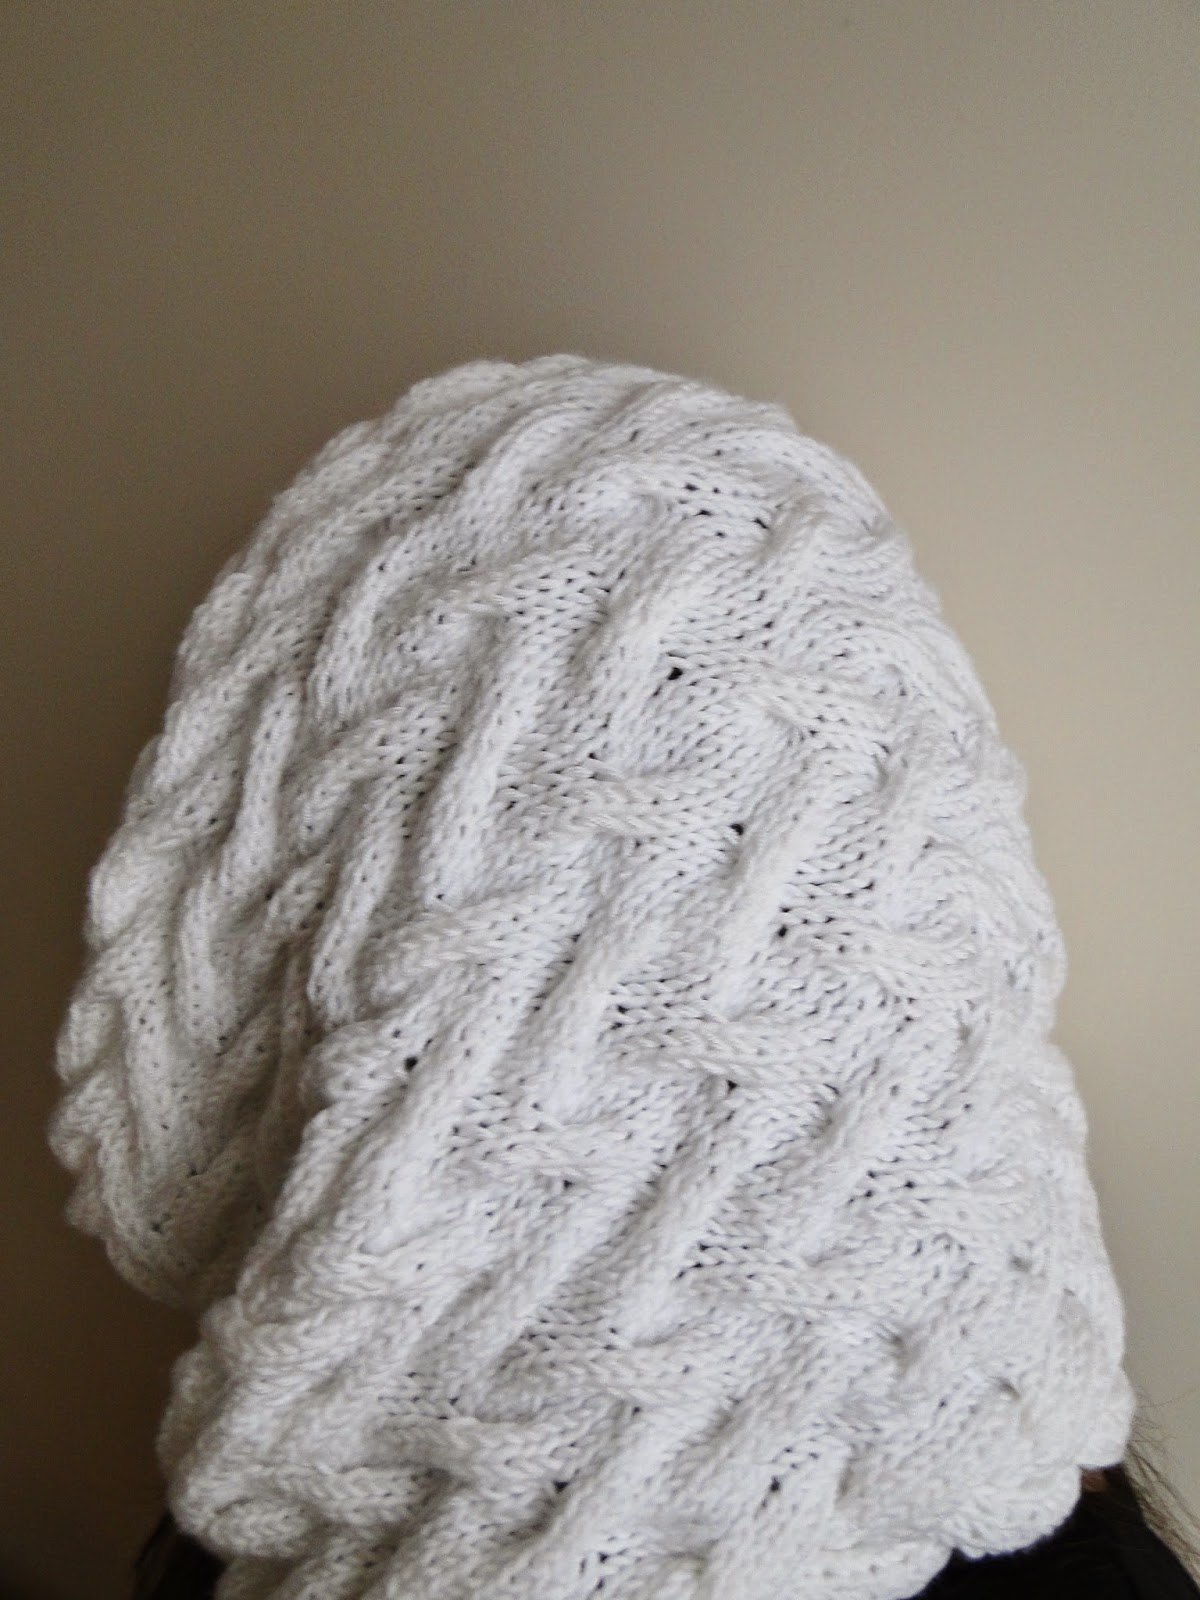 Cabled Cowl Knitting Pattern : 3 Rabbits Patterns: White Cabled Cowl Knitting Pattern